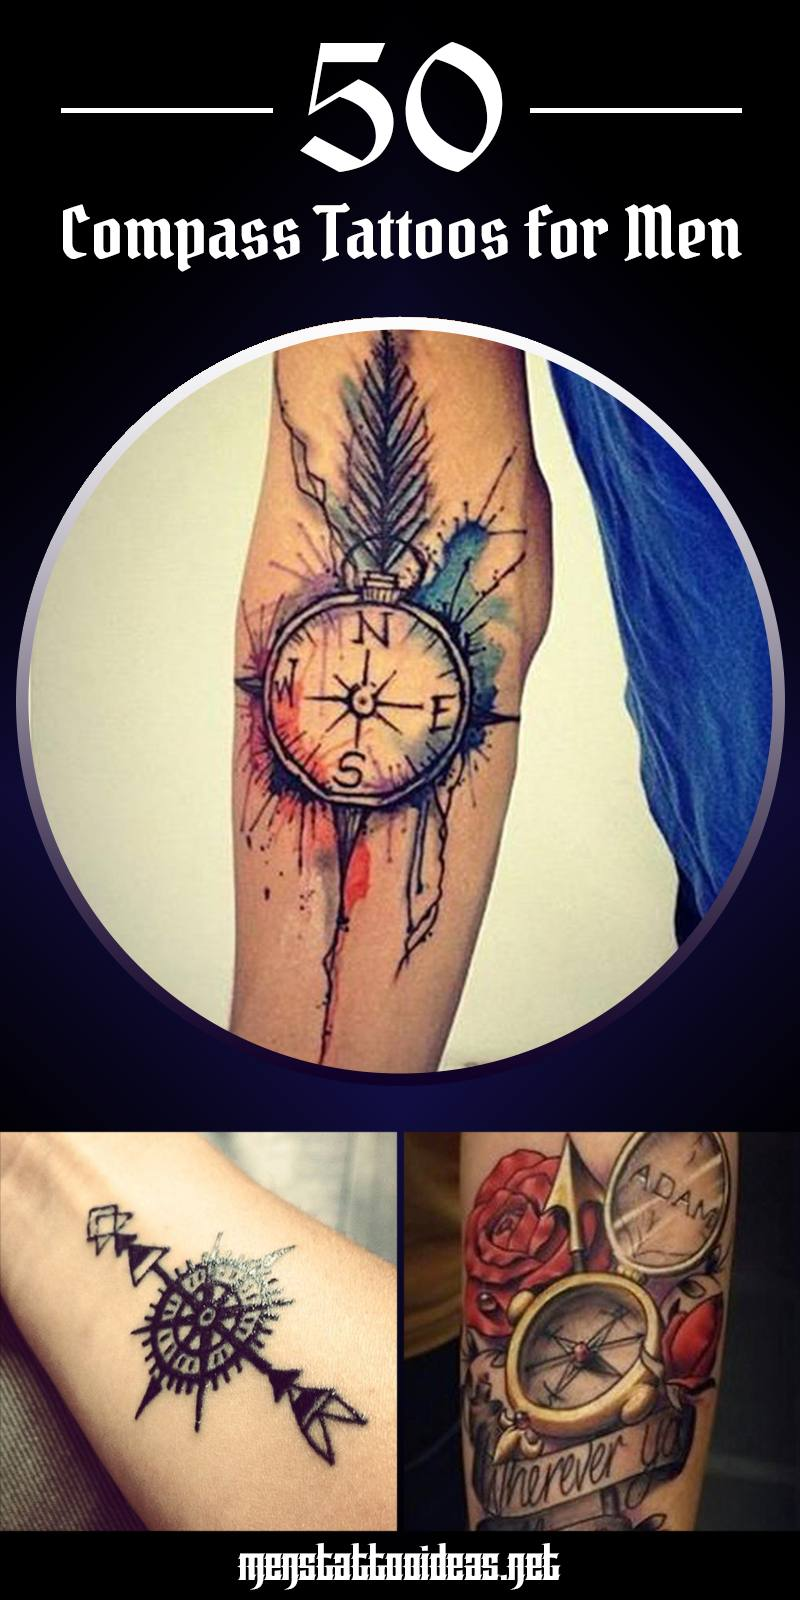 Compass tattoo ideas